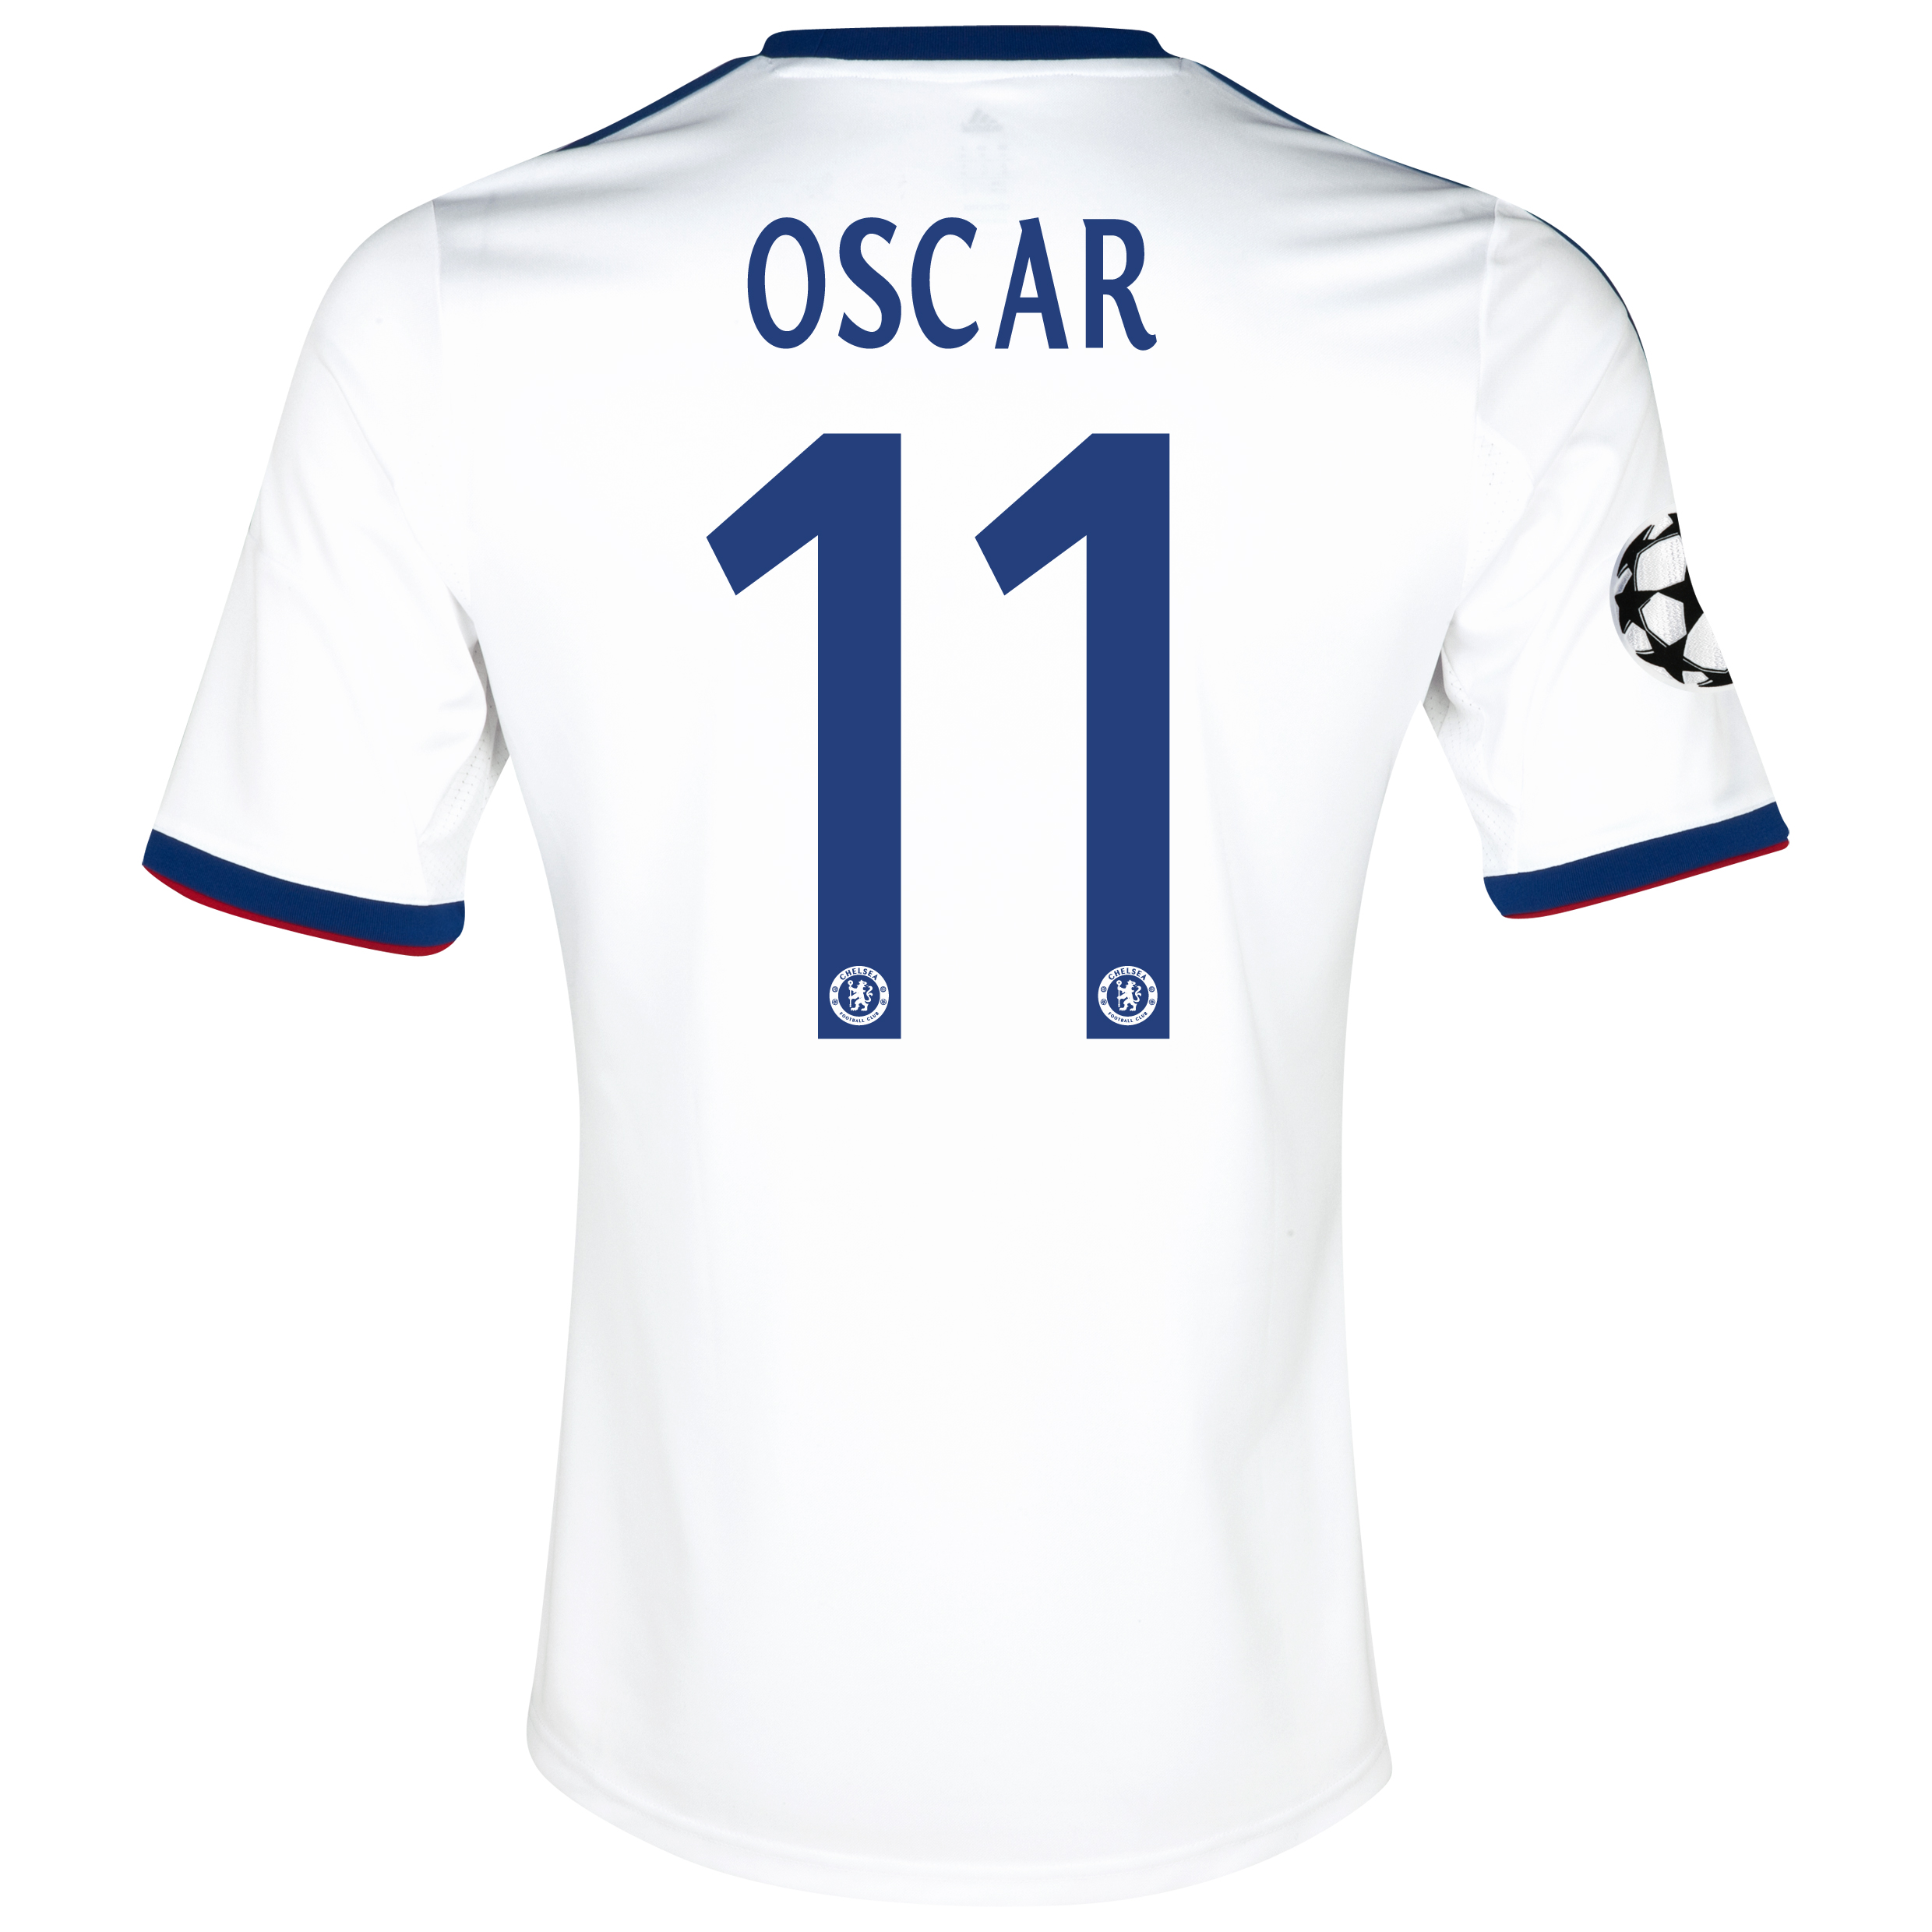 Chelsea UEFA Champions League Away Shirt 2013/14 with Oscar 11 printing